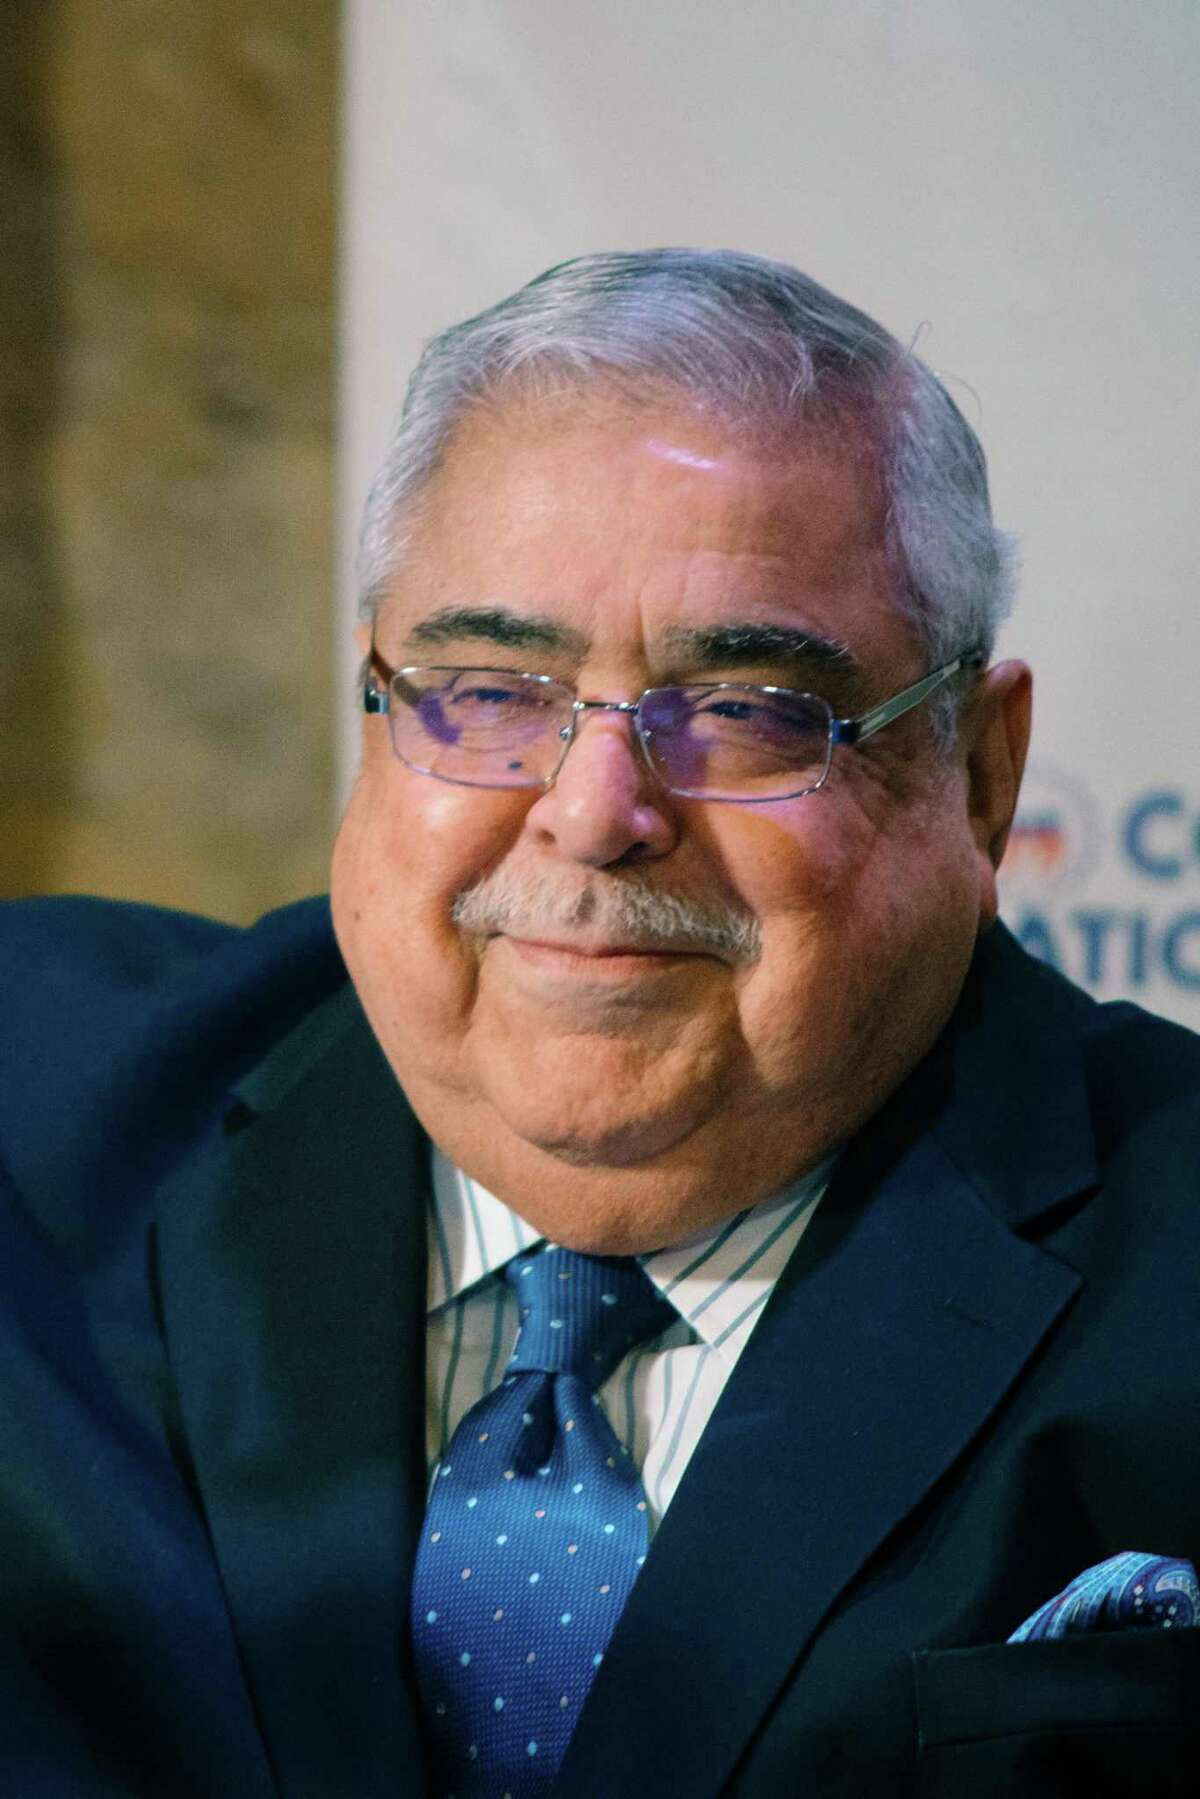 Paul Elizondo died unexpectedly Thursday morning. Elizondo was a mainstay on the Bexar County Commissioner's Court since 1982 and roundly acknowledged as one of San Antonio's major power brokers over the decades.